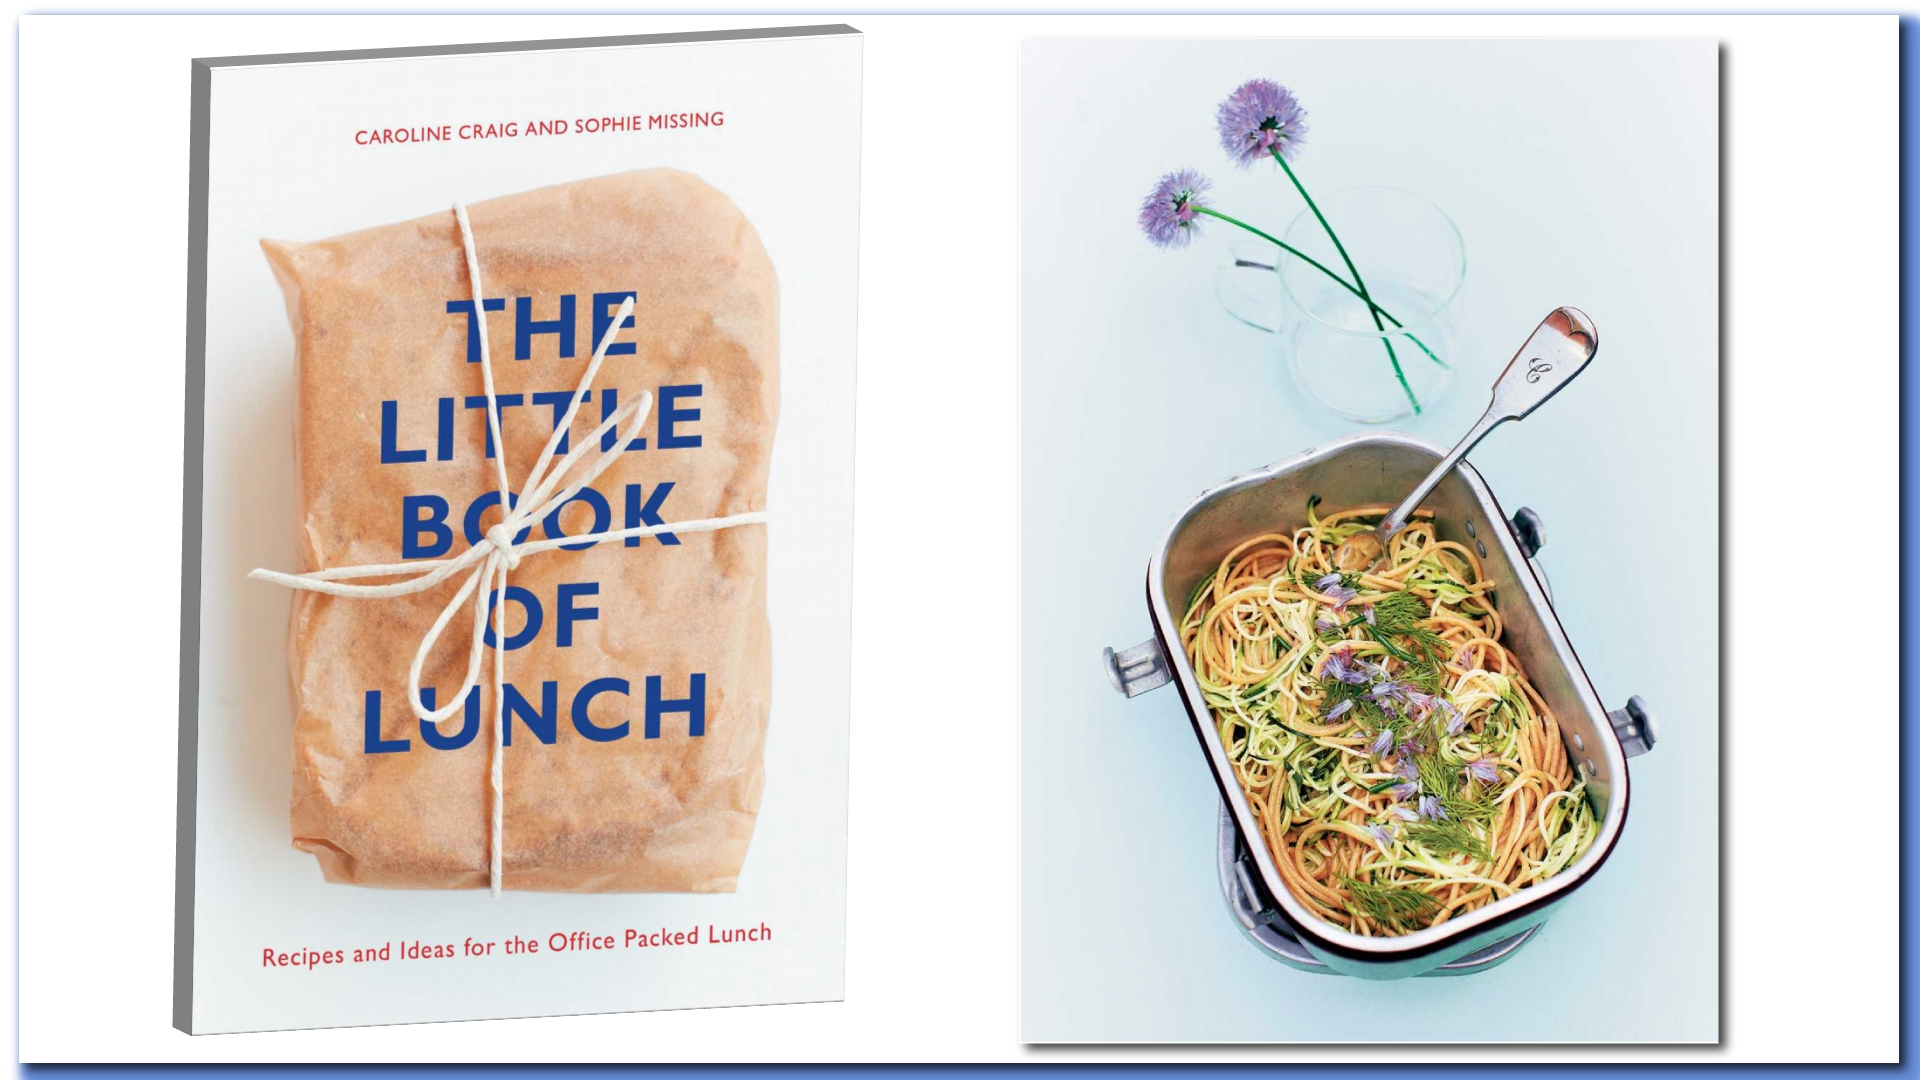 Book Review The Little Of Lunch By Caroline Craig And Sophie Missing